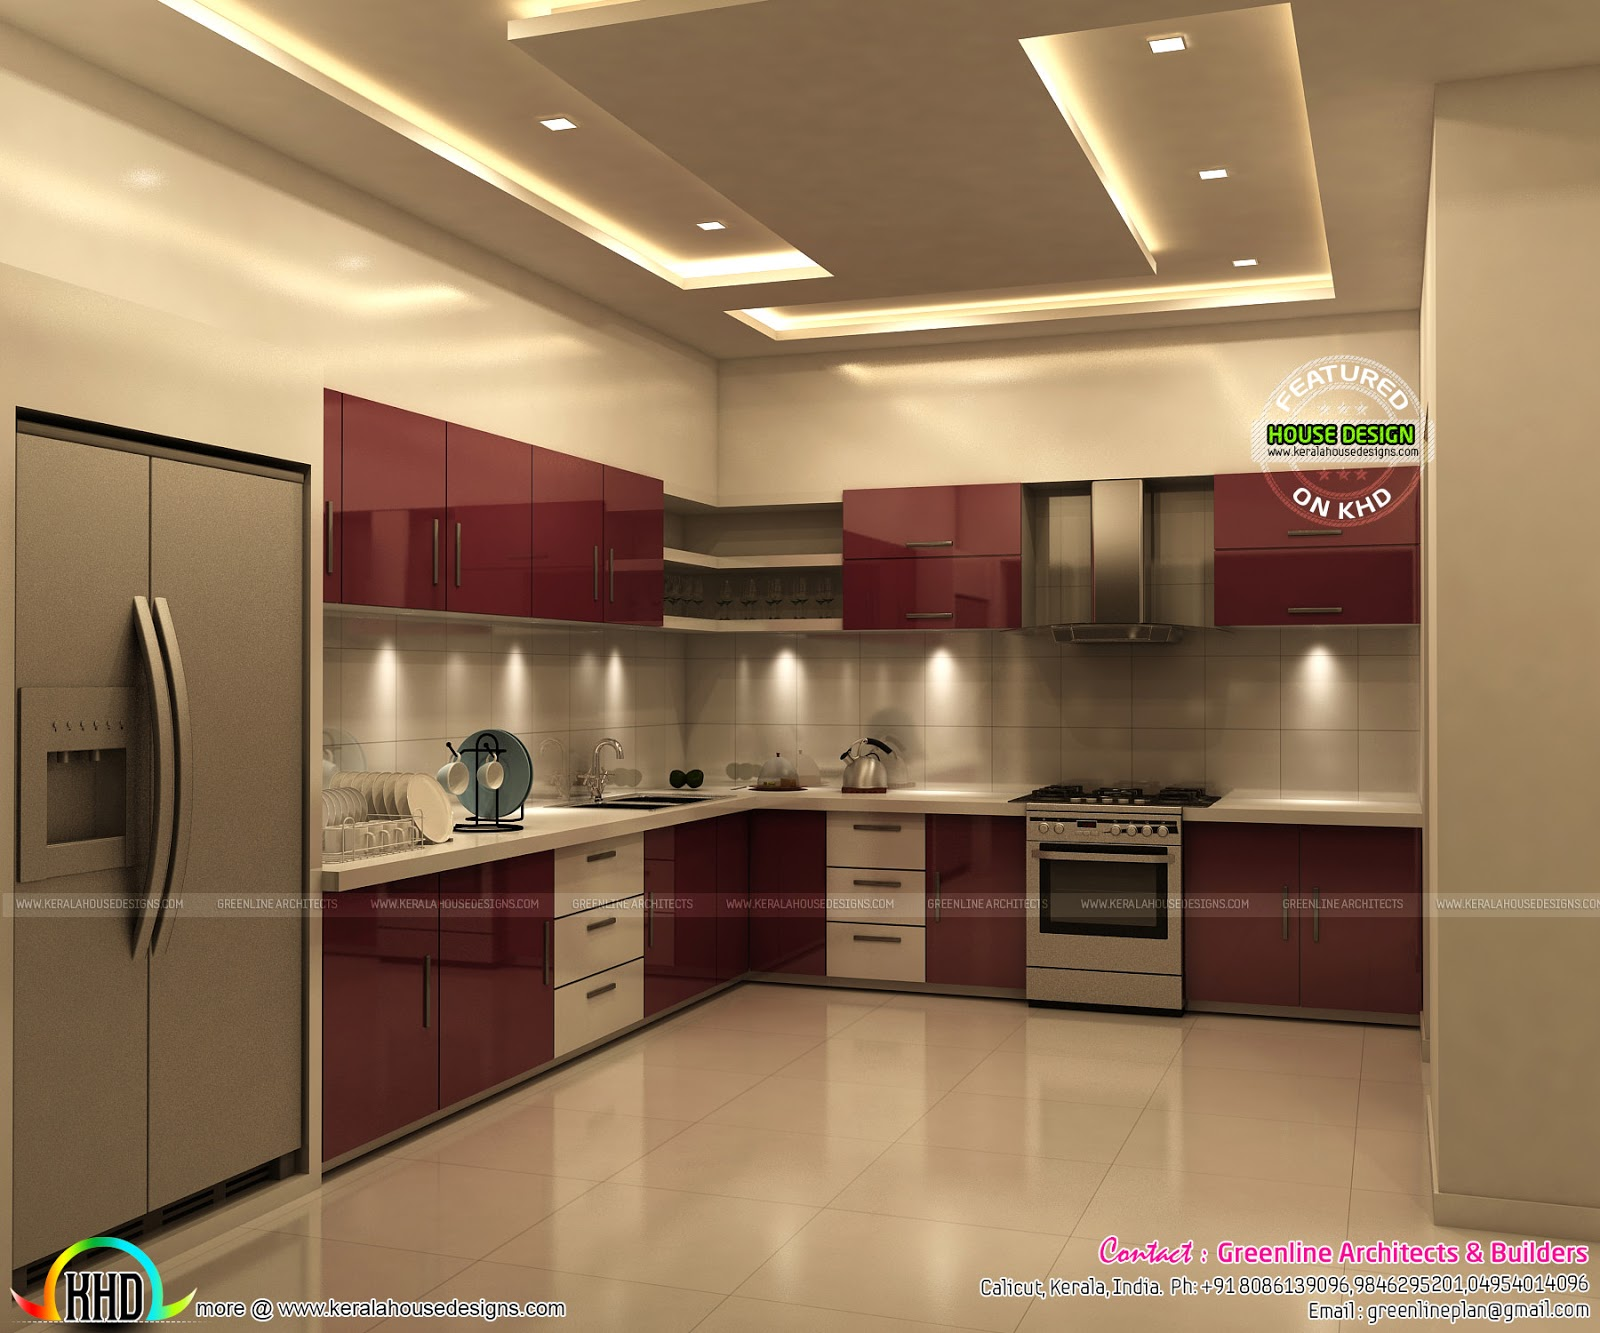 Superb kitchen and bedroom interiors kerala home design for Interior designs kitchen